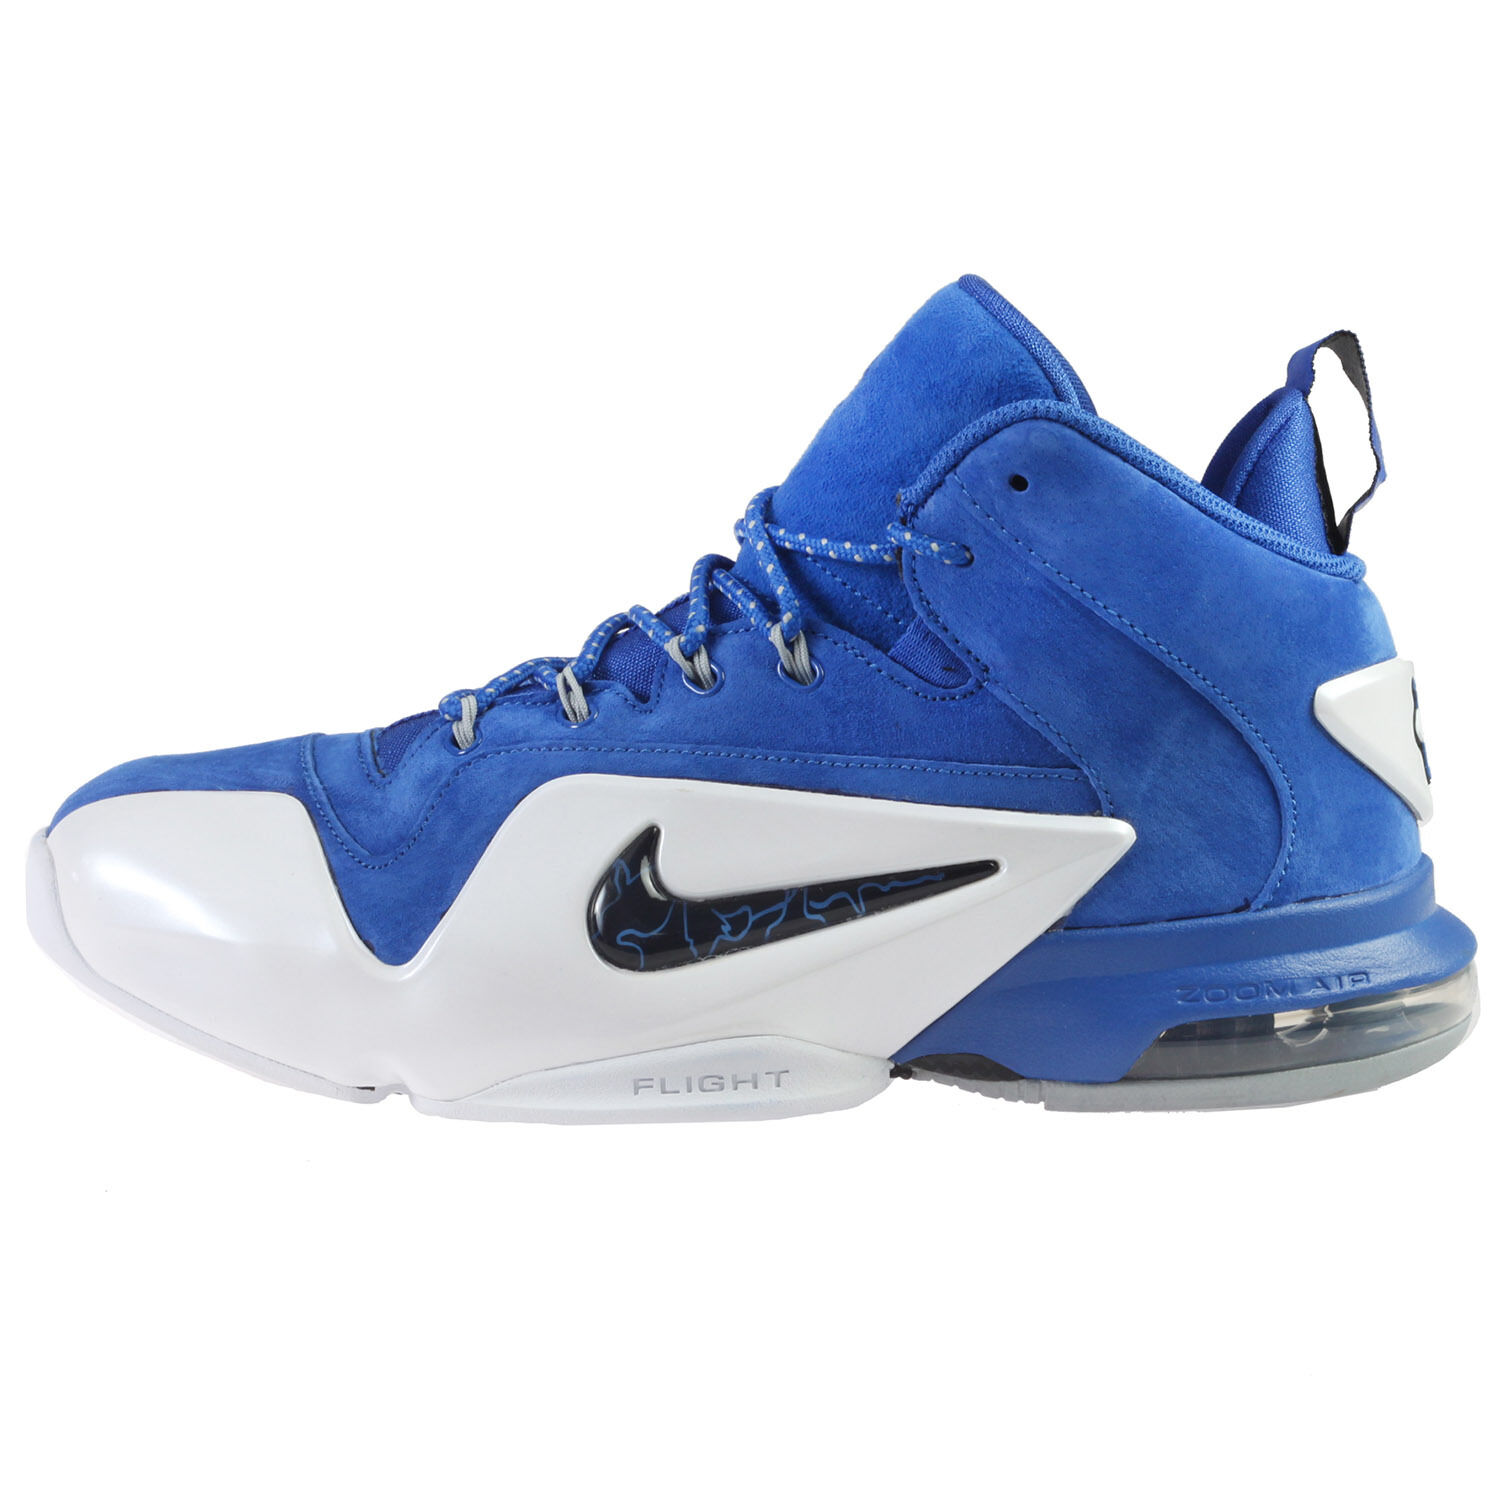 Nike Zoom Penny VI Mens 749629-401 Game Royal Suede Basketball schuhe Größe 9